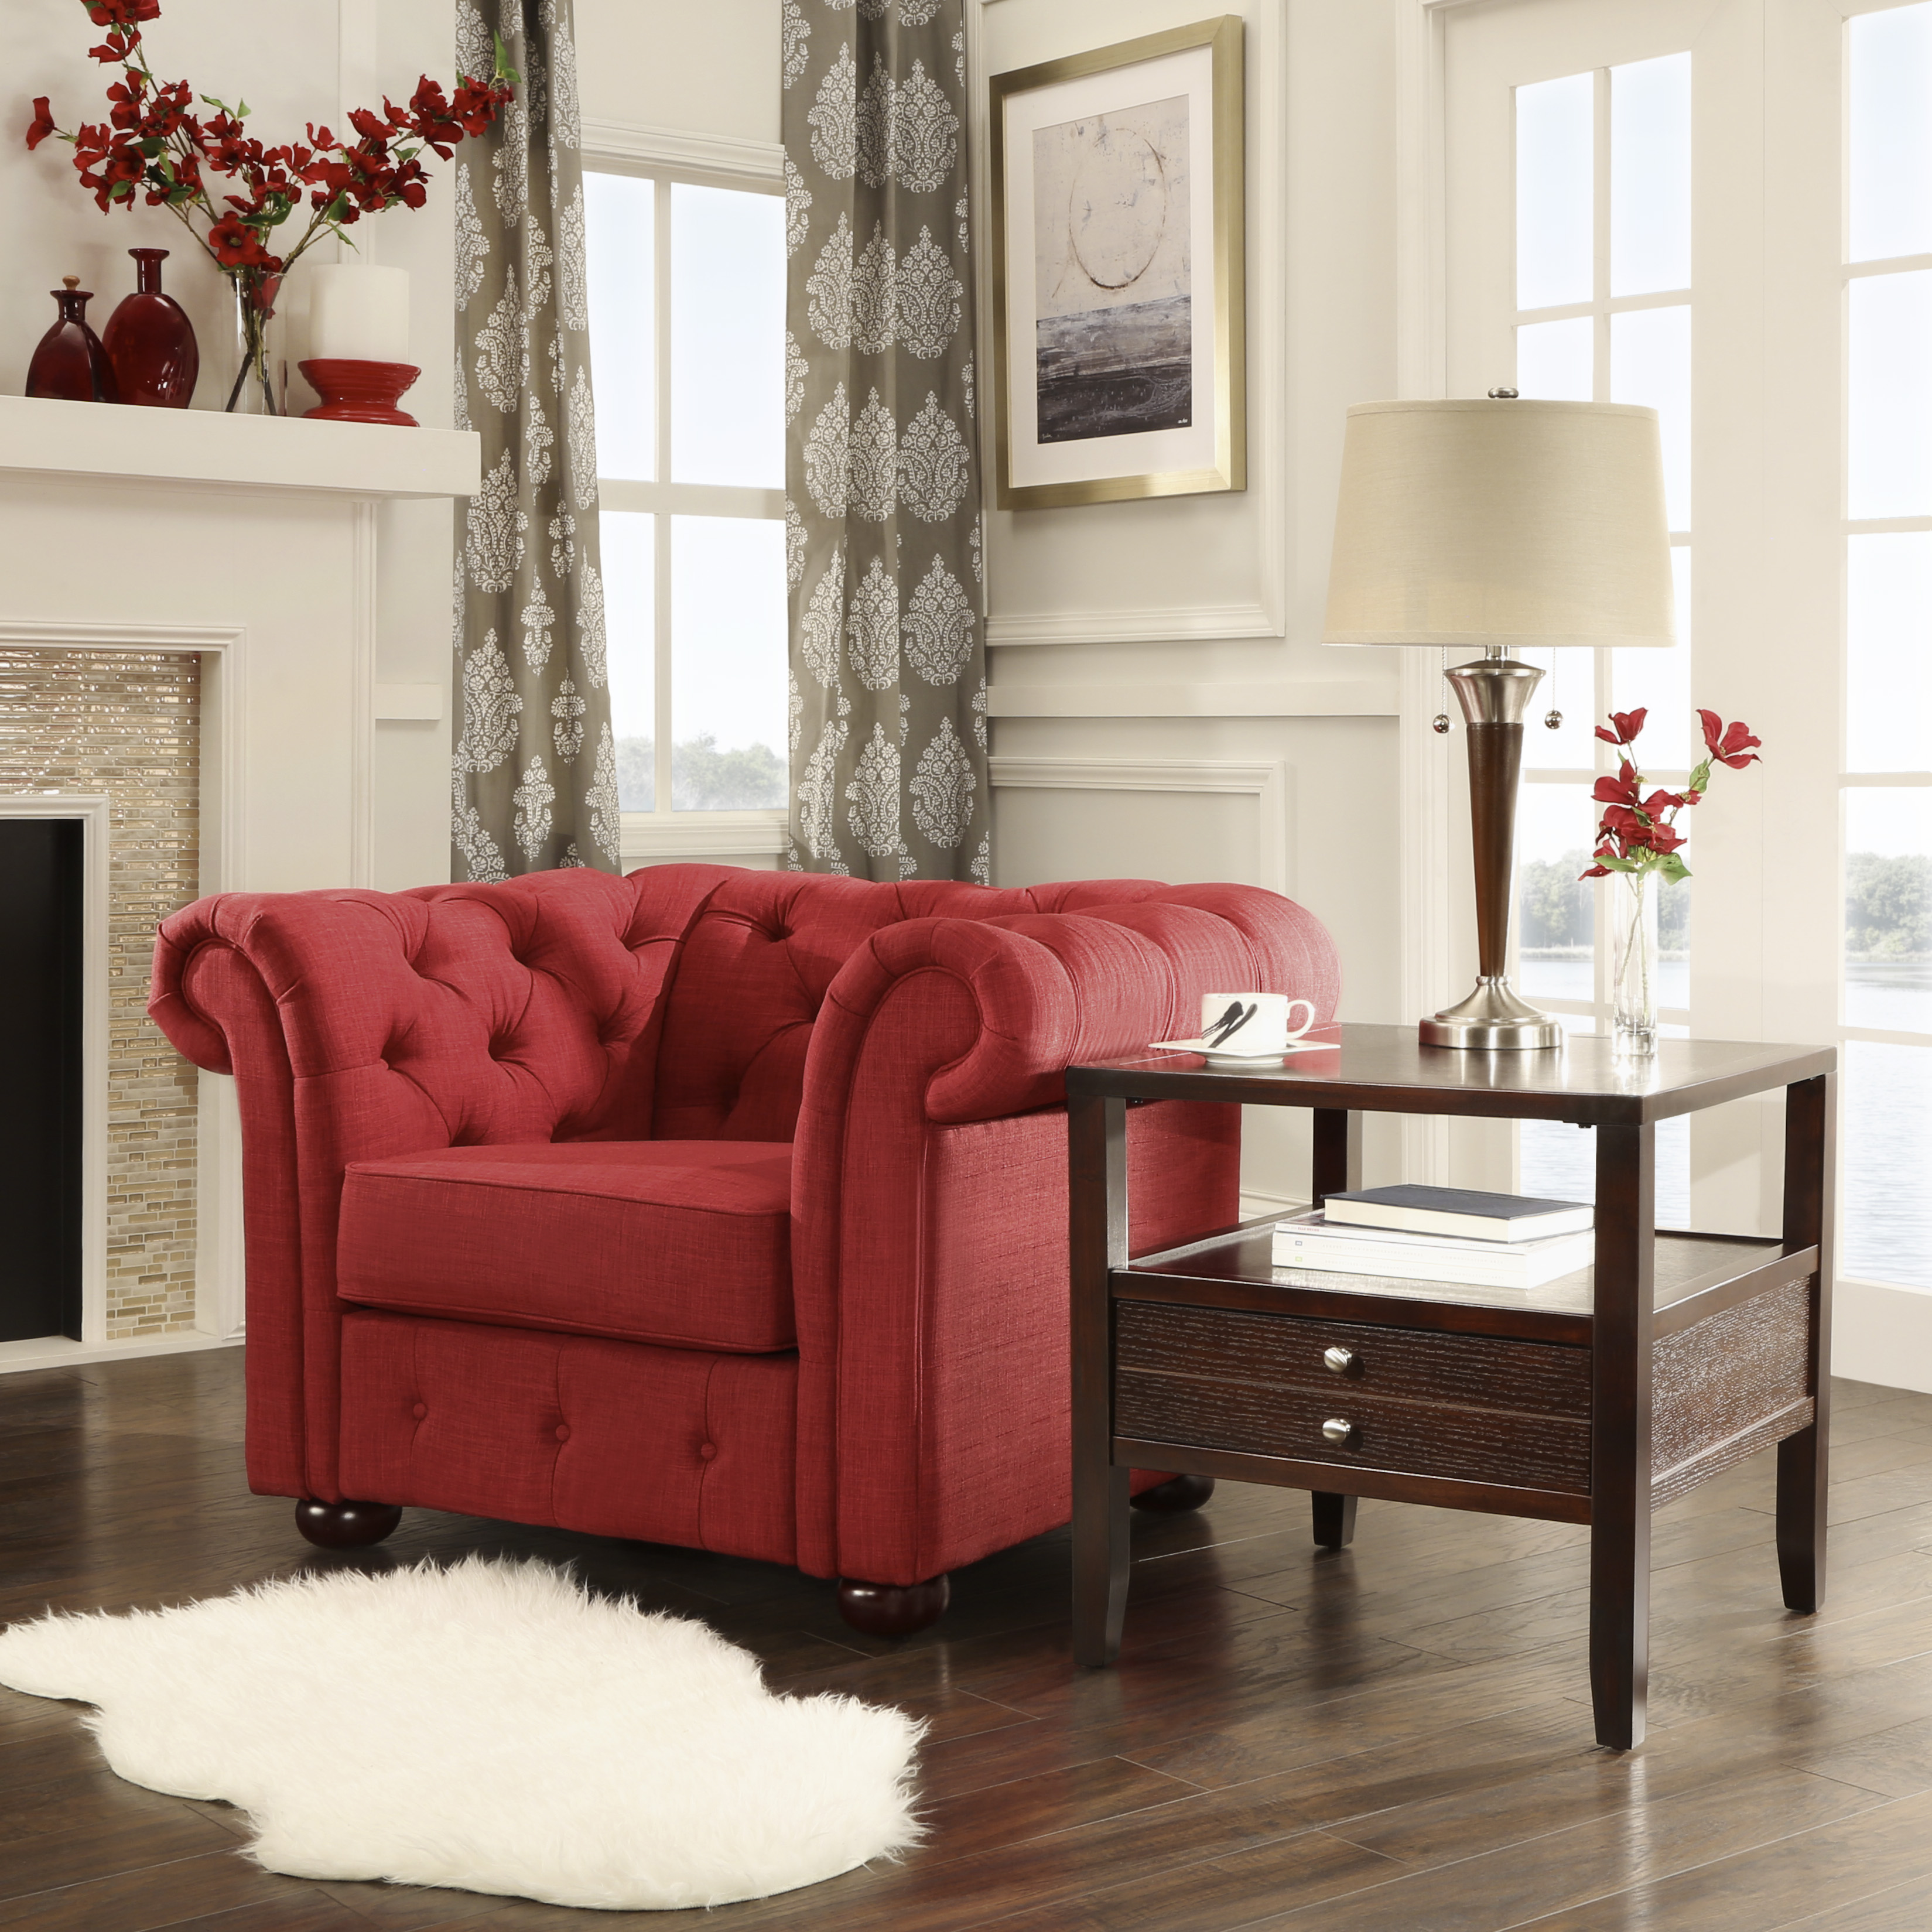 Weston home bowman tufted designed livingroom chair with curved arms multiple colors walmart com